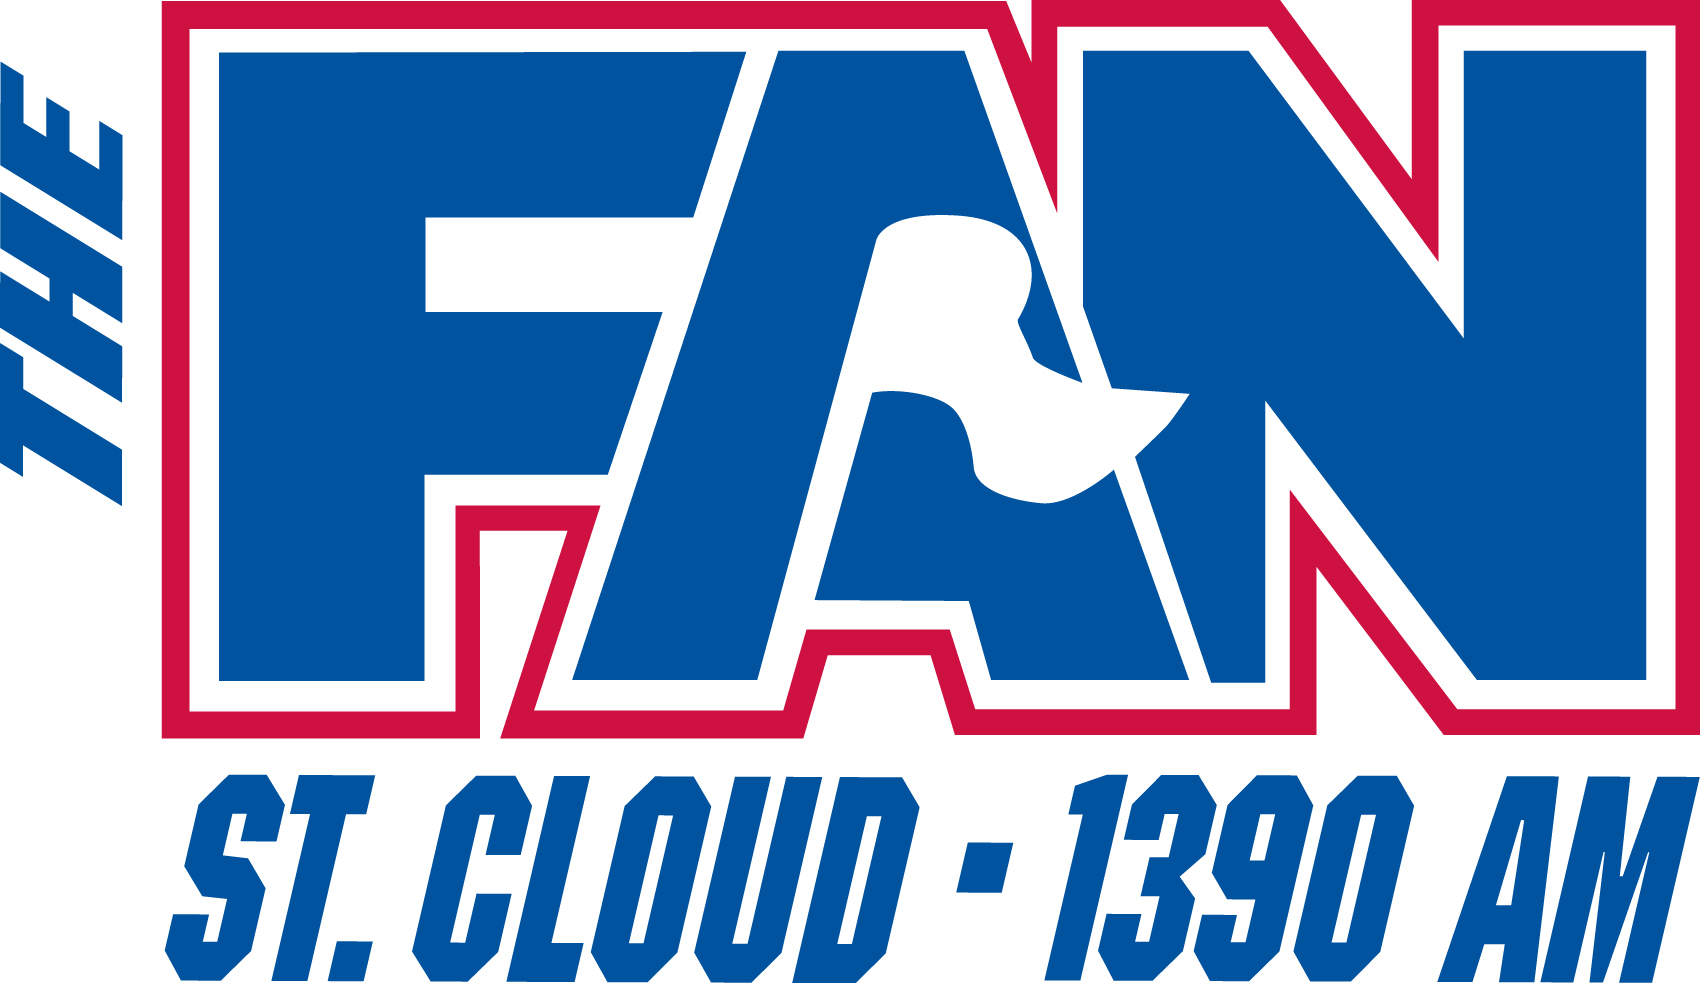 The Fan St. Cloud 1390 AM